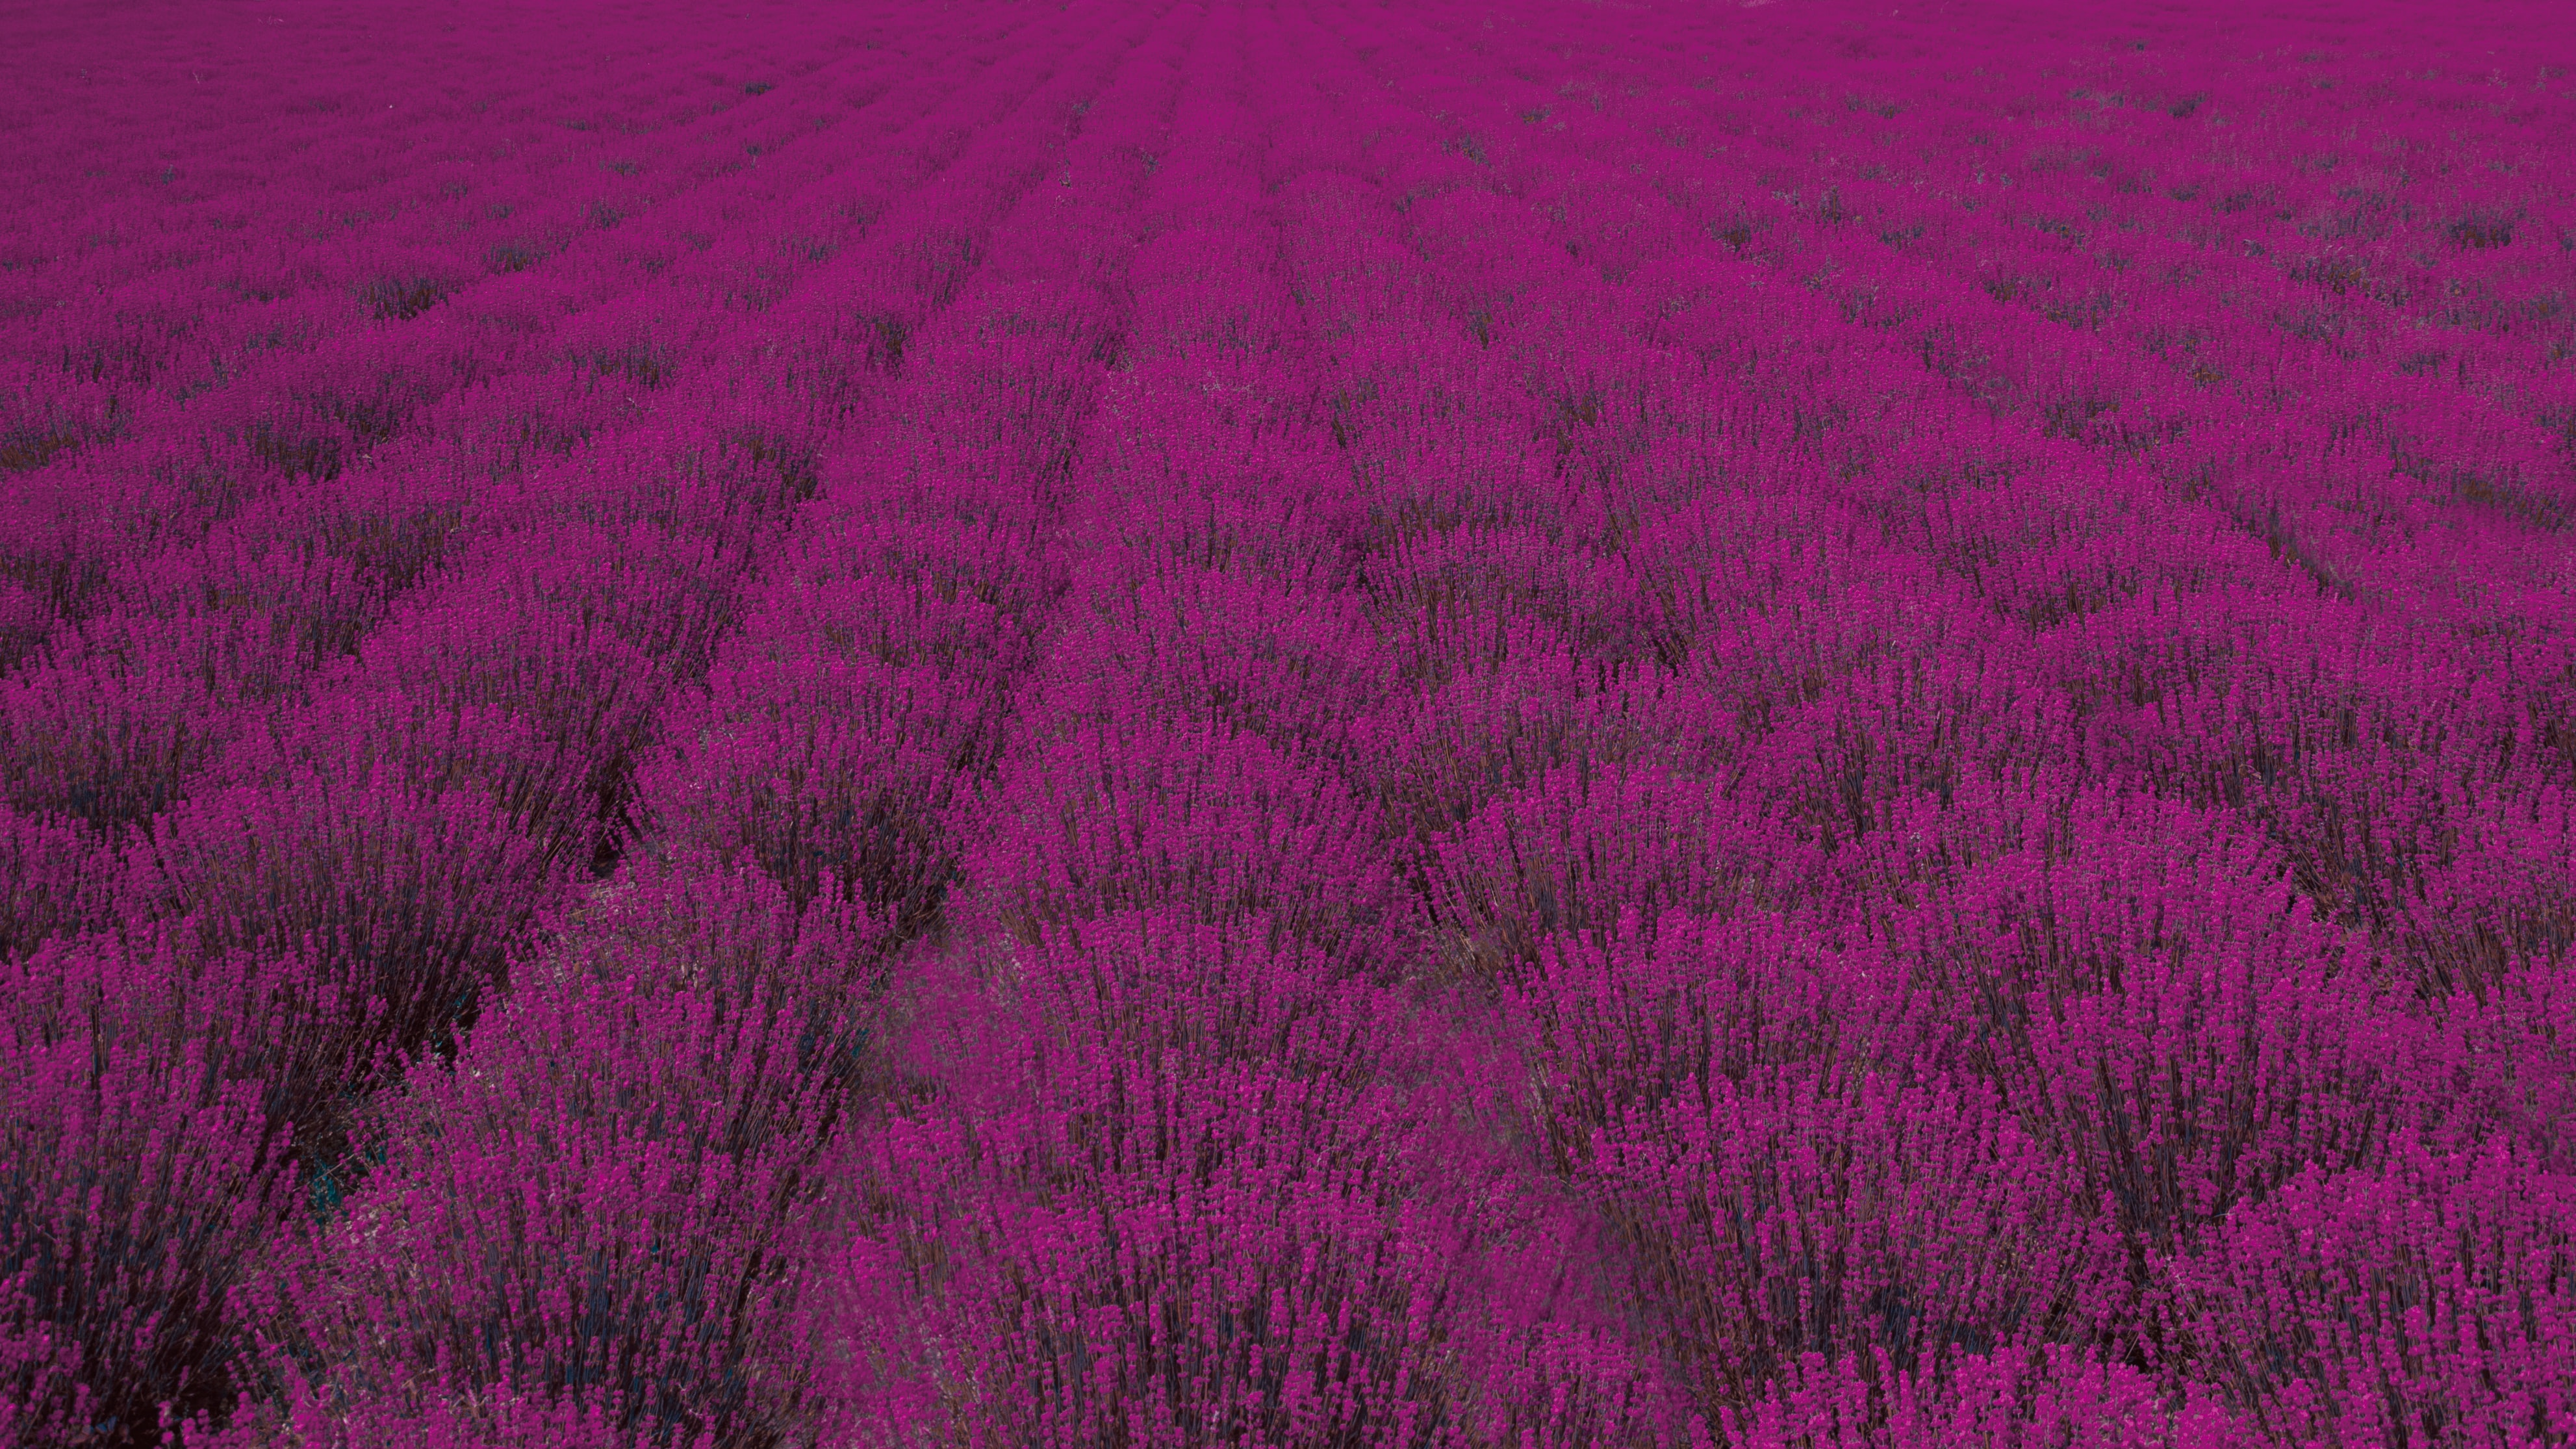 pink petaled flower field